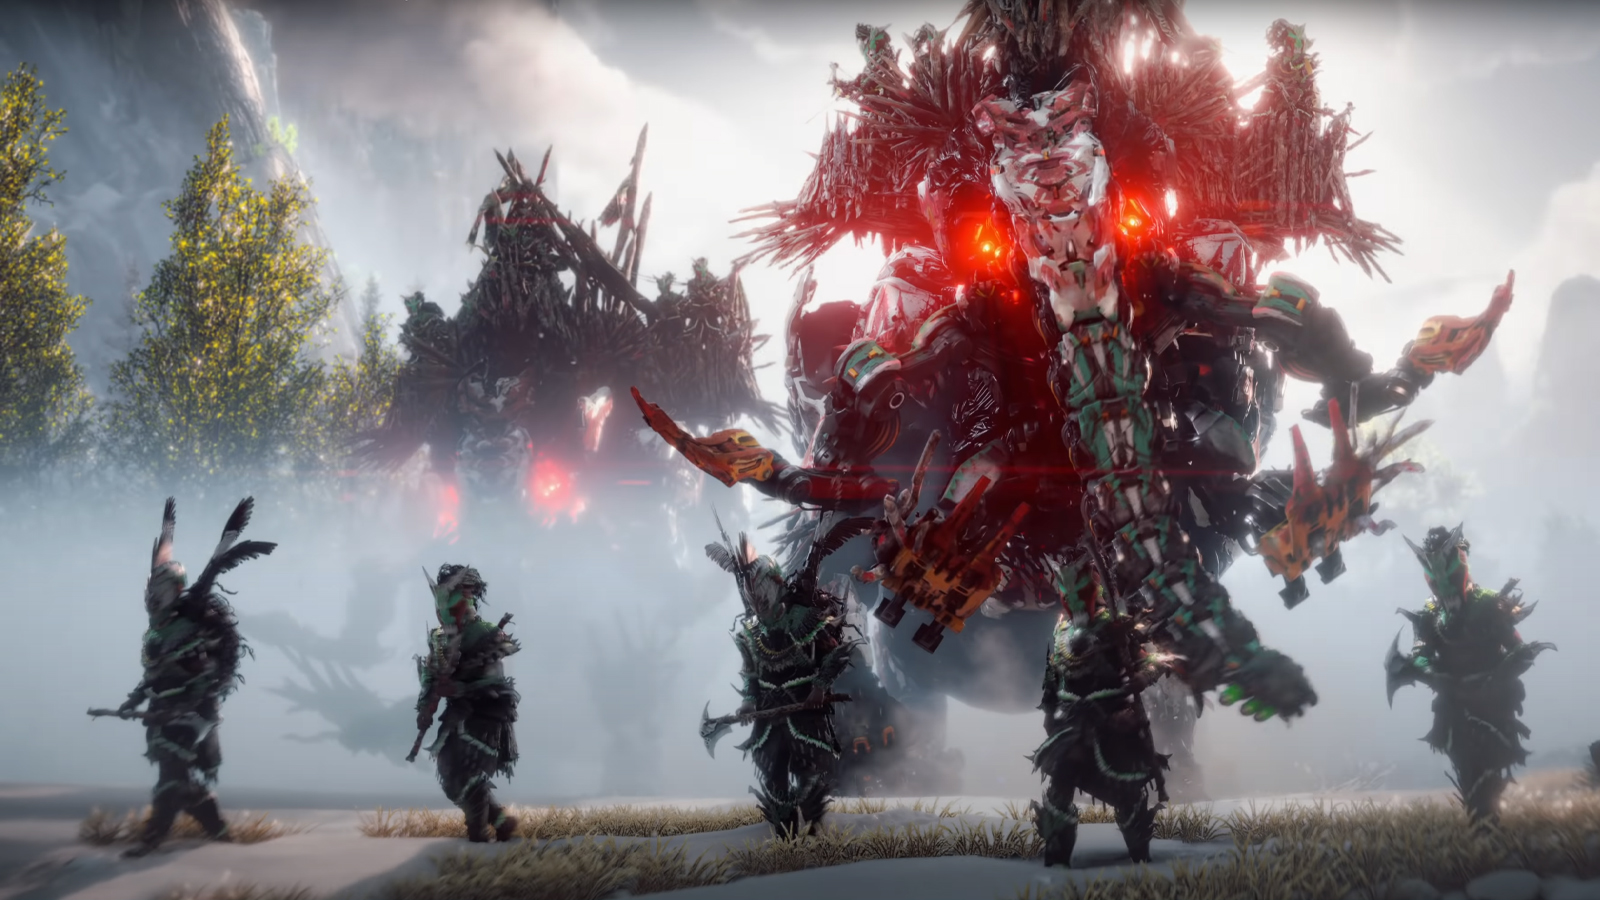 Four people stand armored in front of a gigantic mechanical creature, surrounded by fog